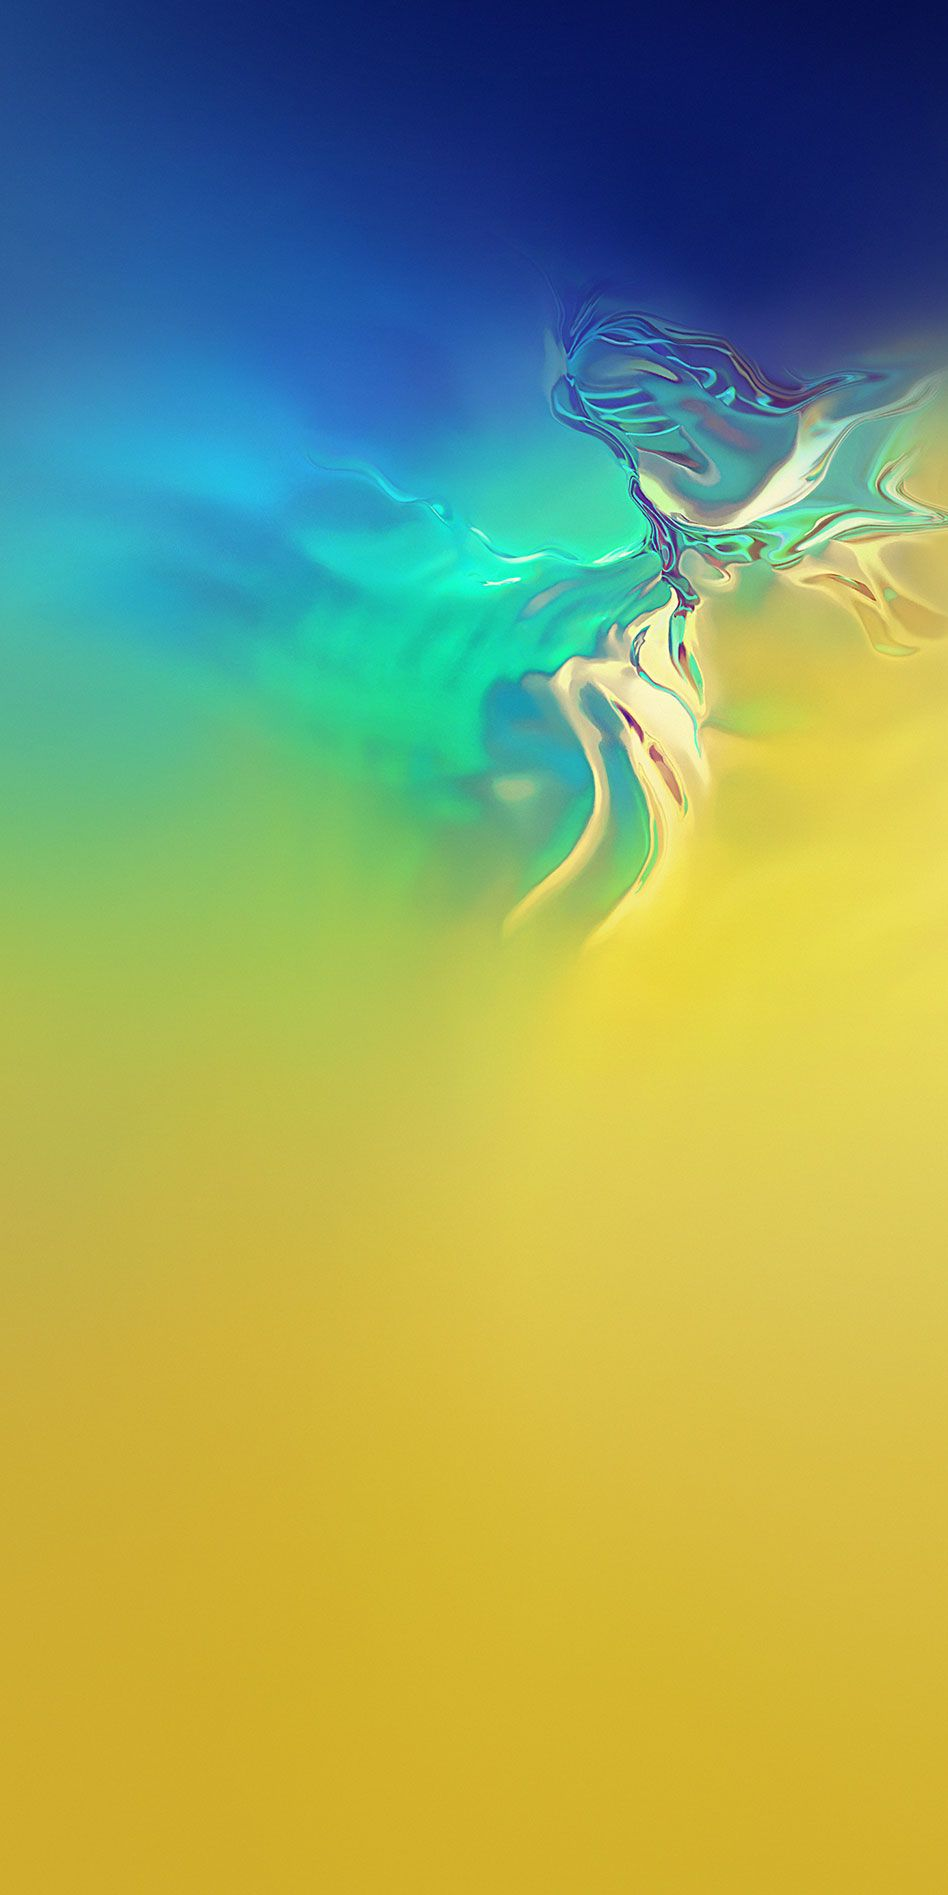 Download S10 Wallpaper Download Hd Samsung Wallpaper Android Huawei Wallpapers Abstract Iphone Wallpaper